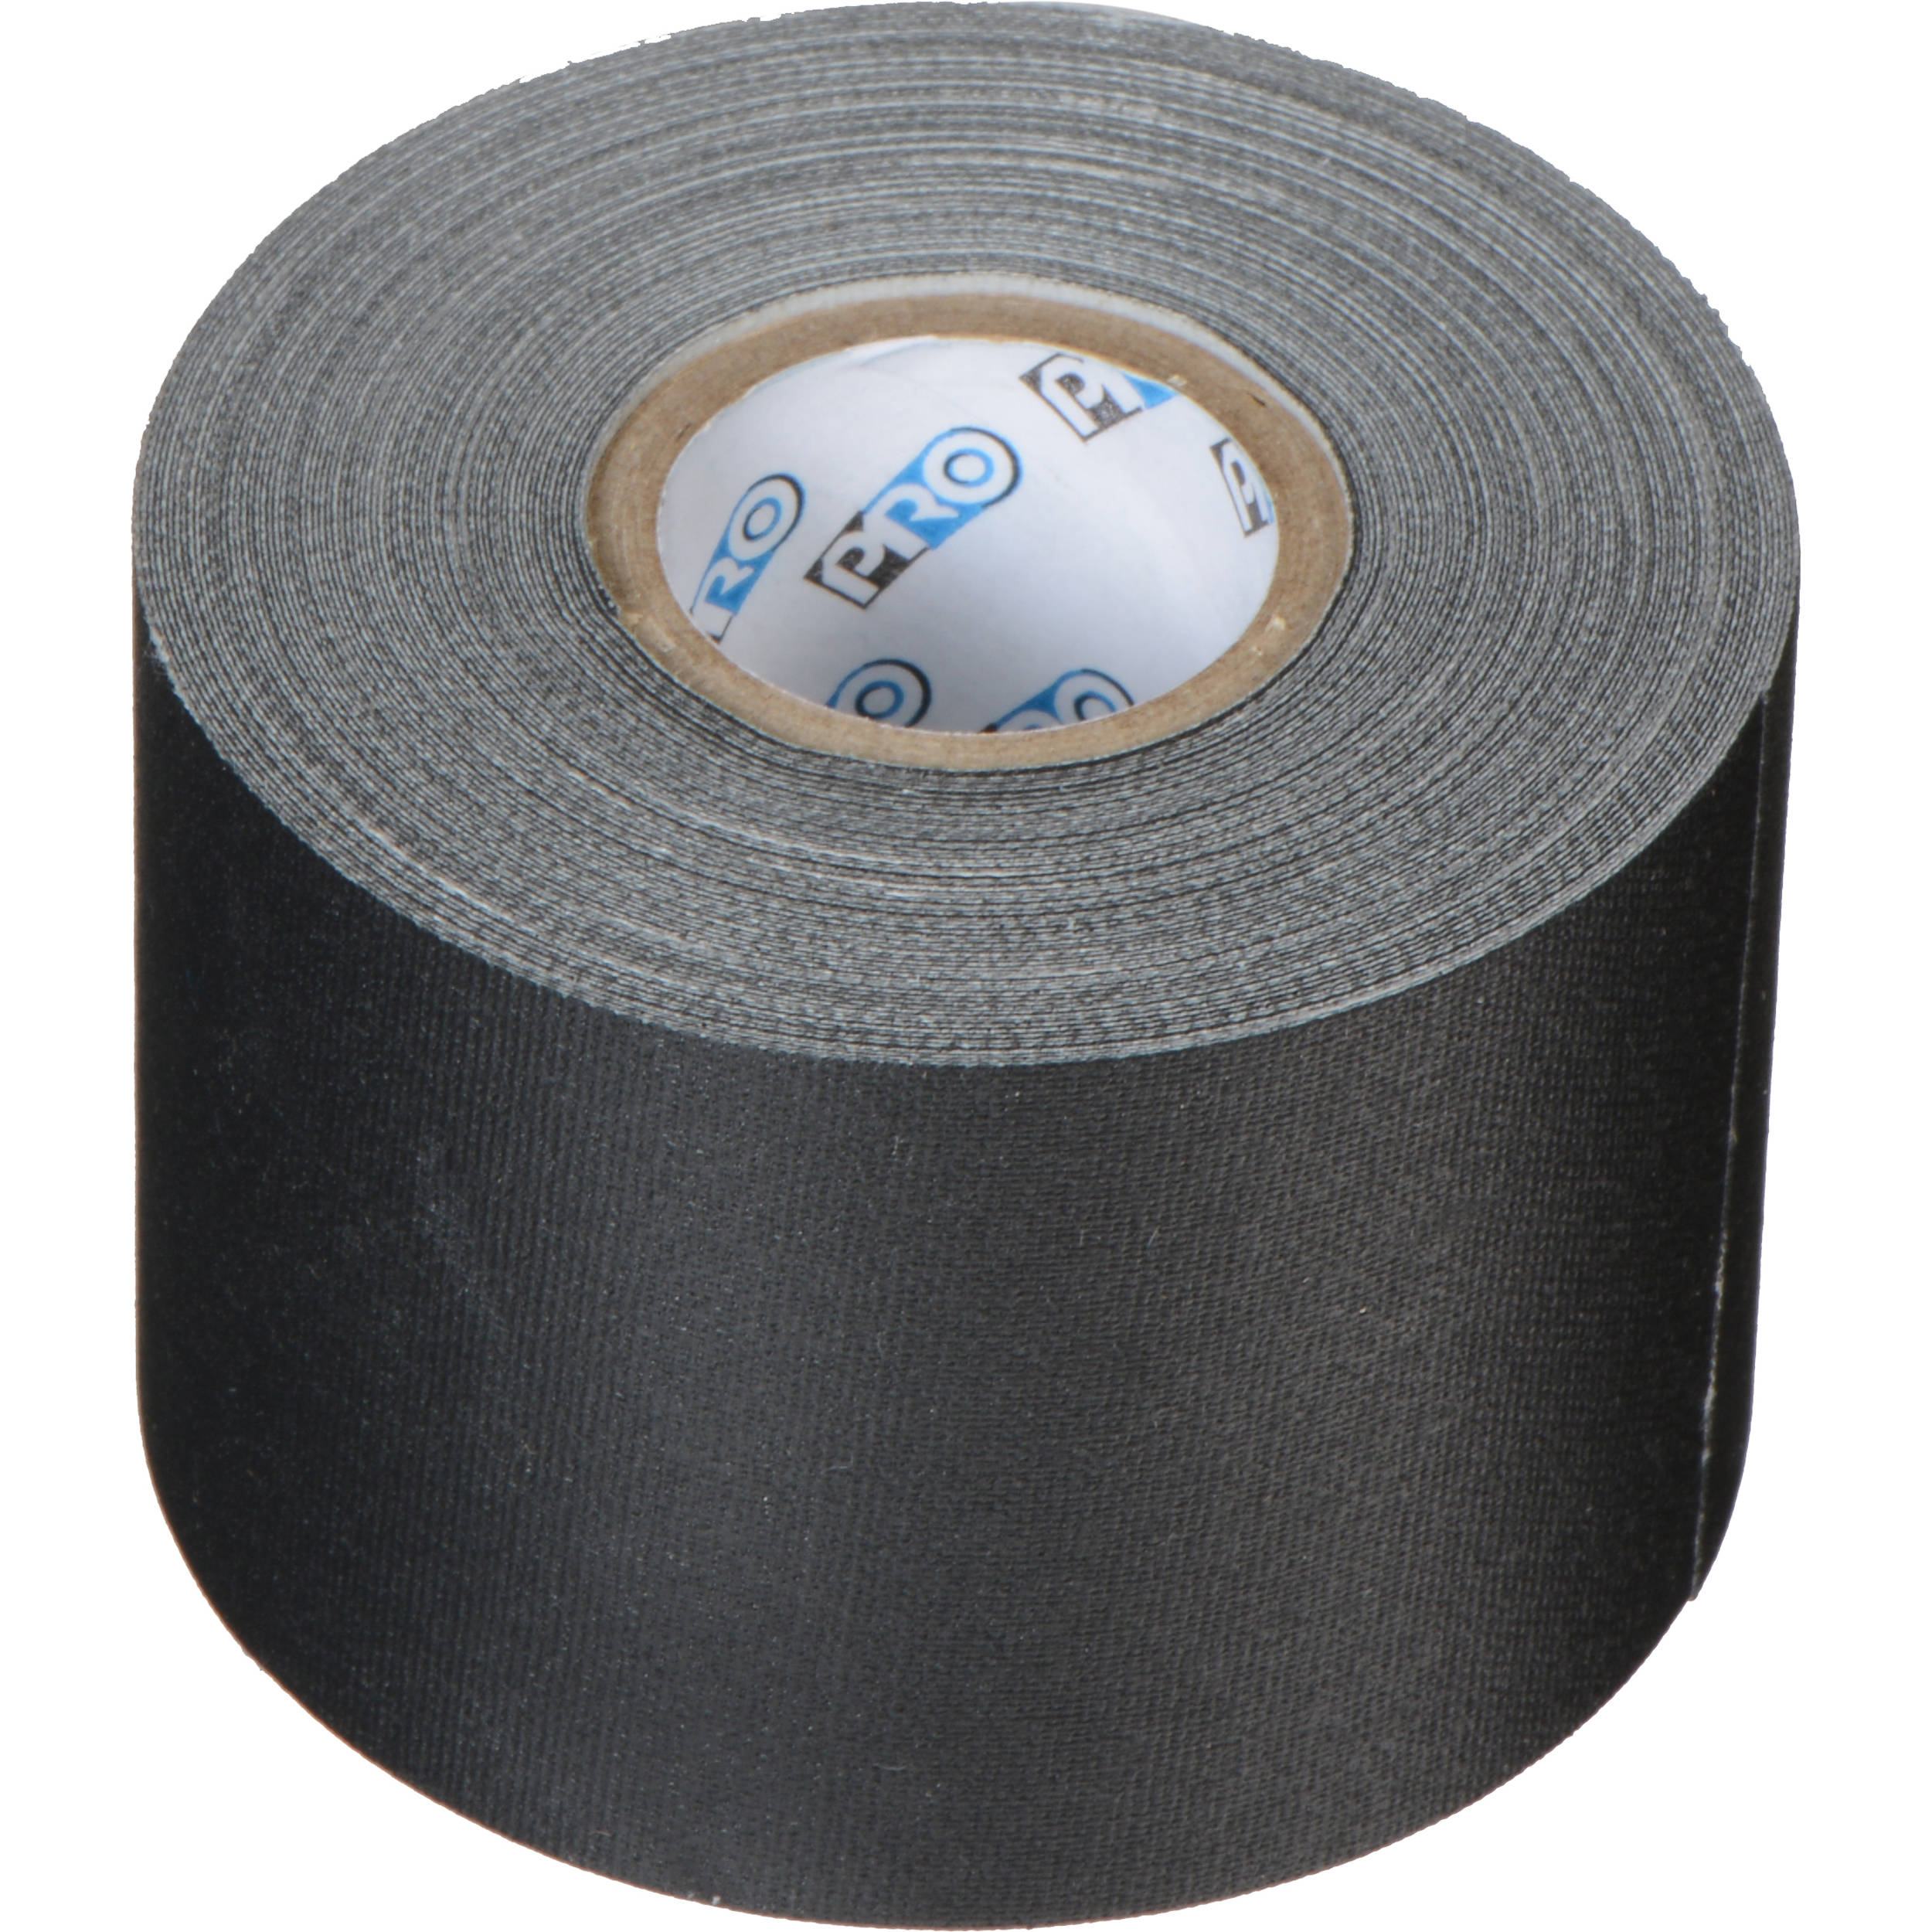 Duct Tape 2 inch x 30 yards 10 Mils White